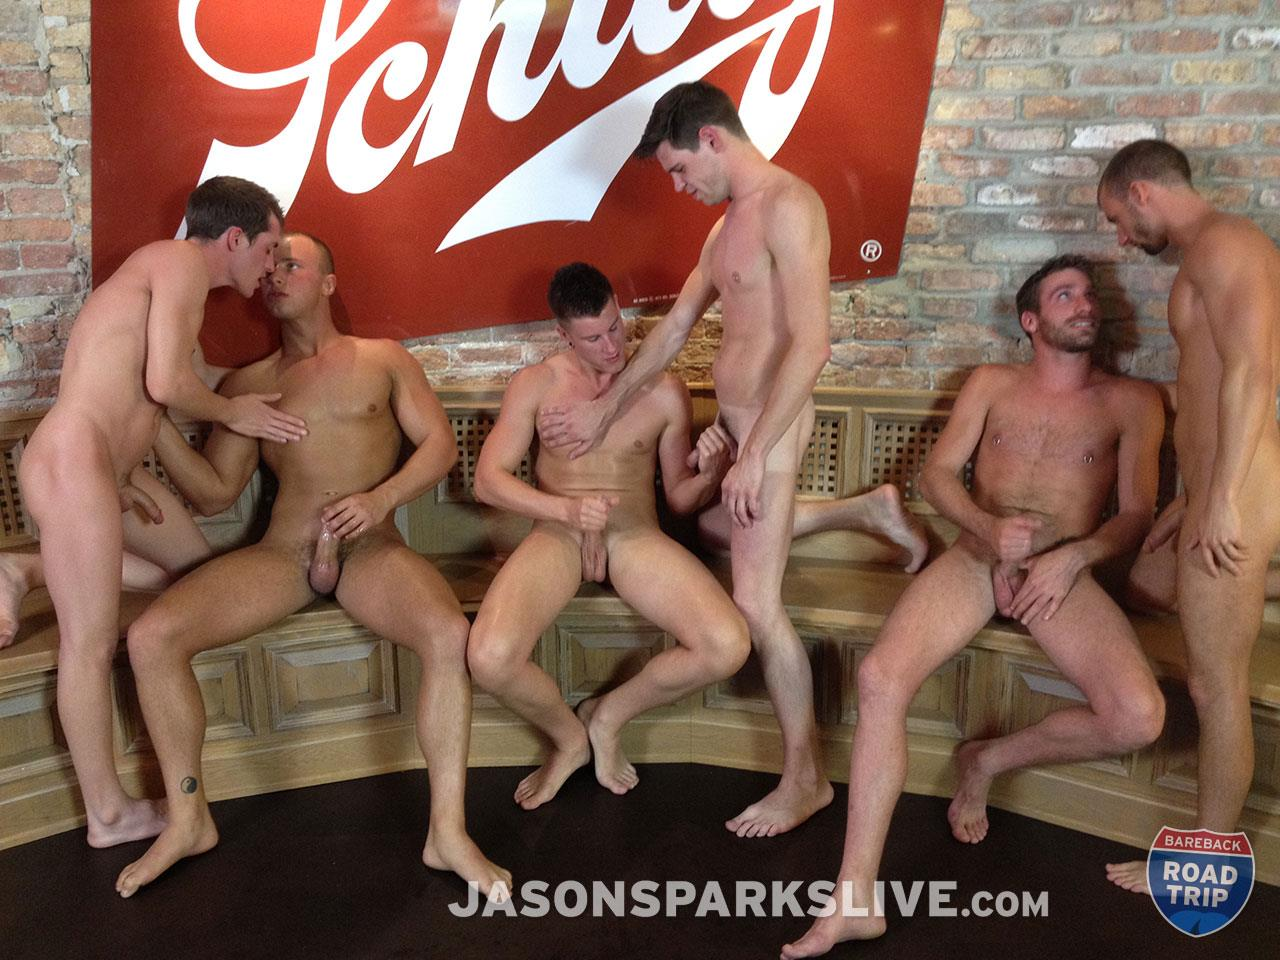 Jason-Sparks-Live-Dustin-Tyler-Shawn-Andrews-Brendon-Scott-Corbin-Riley-Antonio-Paul-Jake-Matthews-Bareback-Orgy-Amateur-Gay-Porn-13 Big Cock Amateur Bareback Orgy in Milwaukee